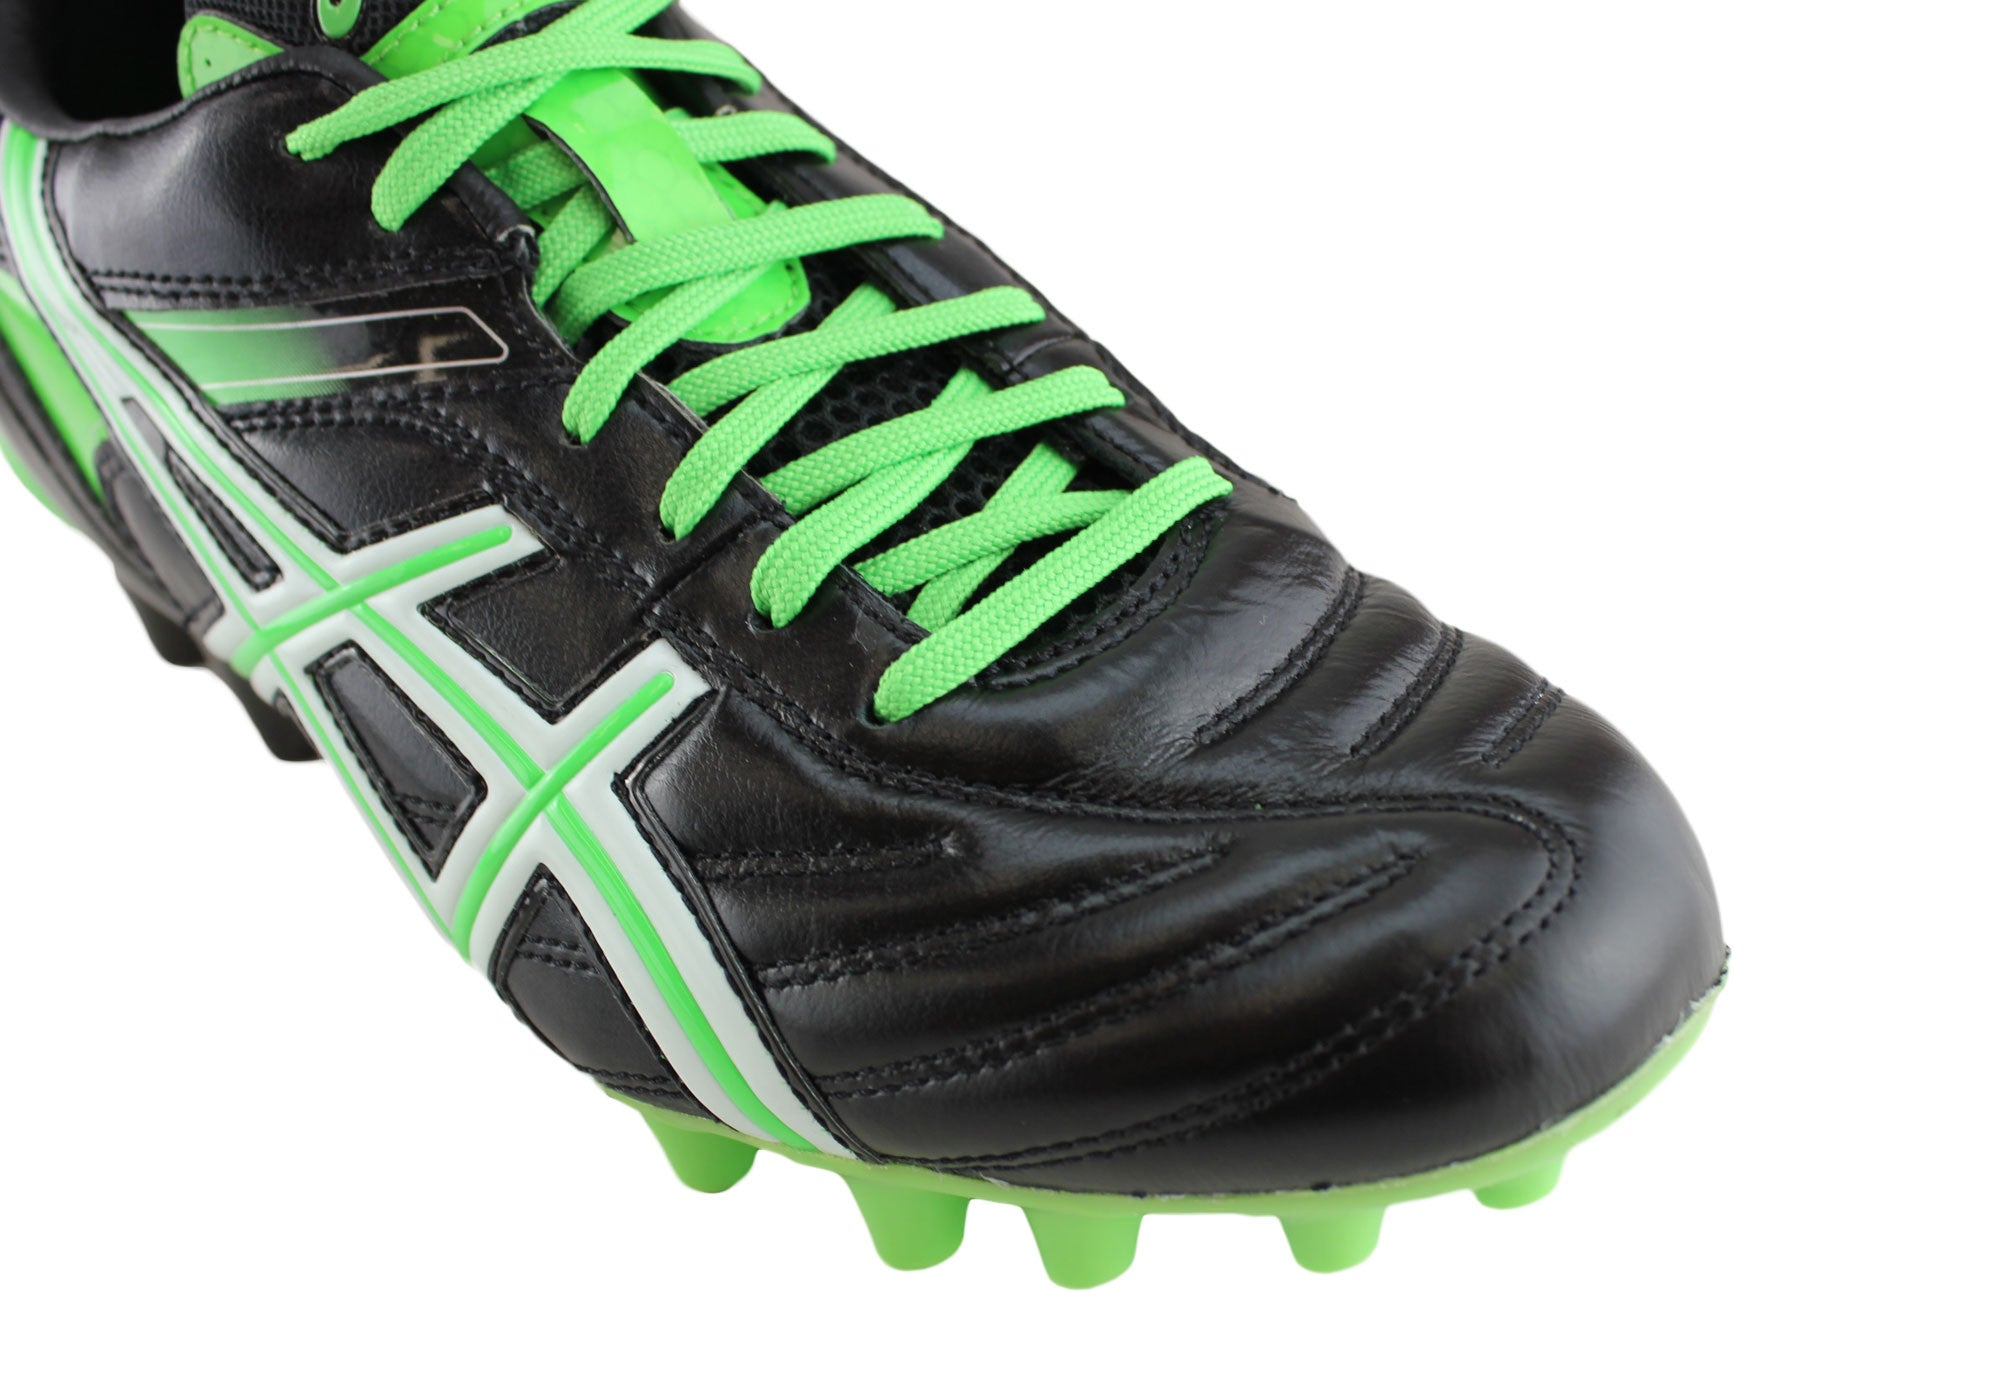 Asics Mens Lethal Tigeror 5 ST IT Football/Moulded Sole Boots